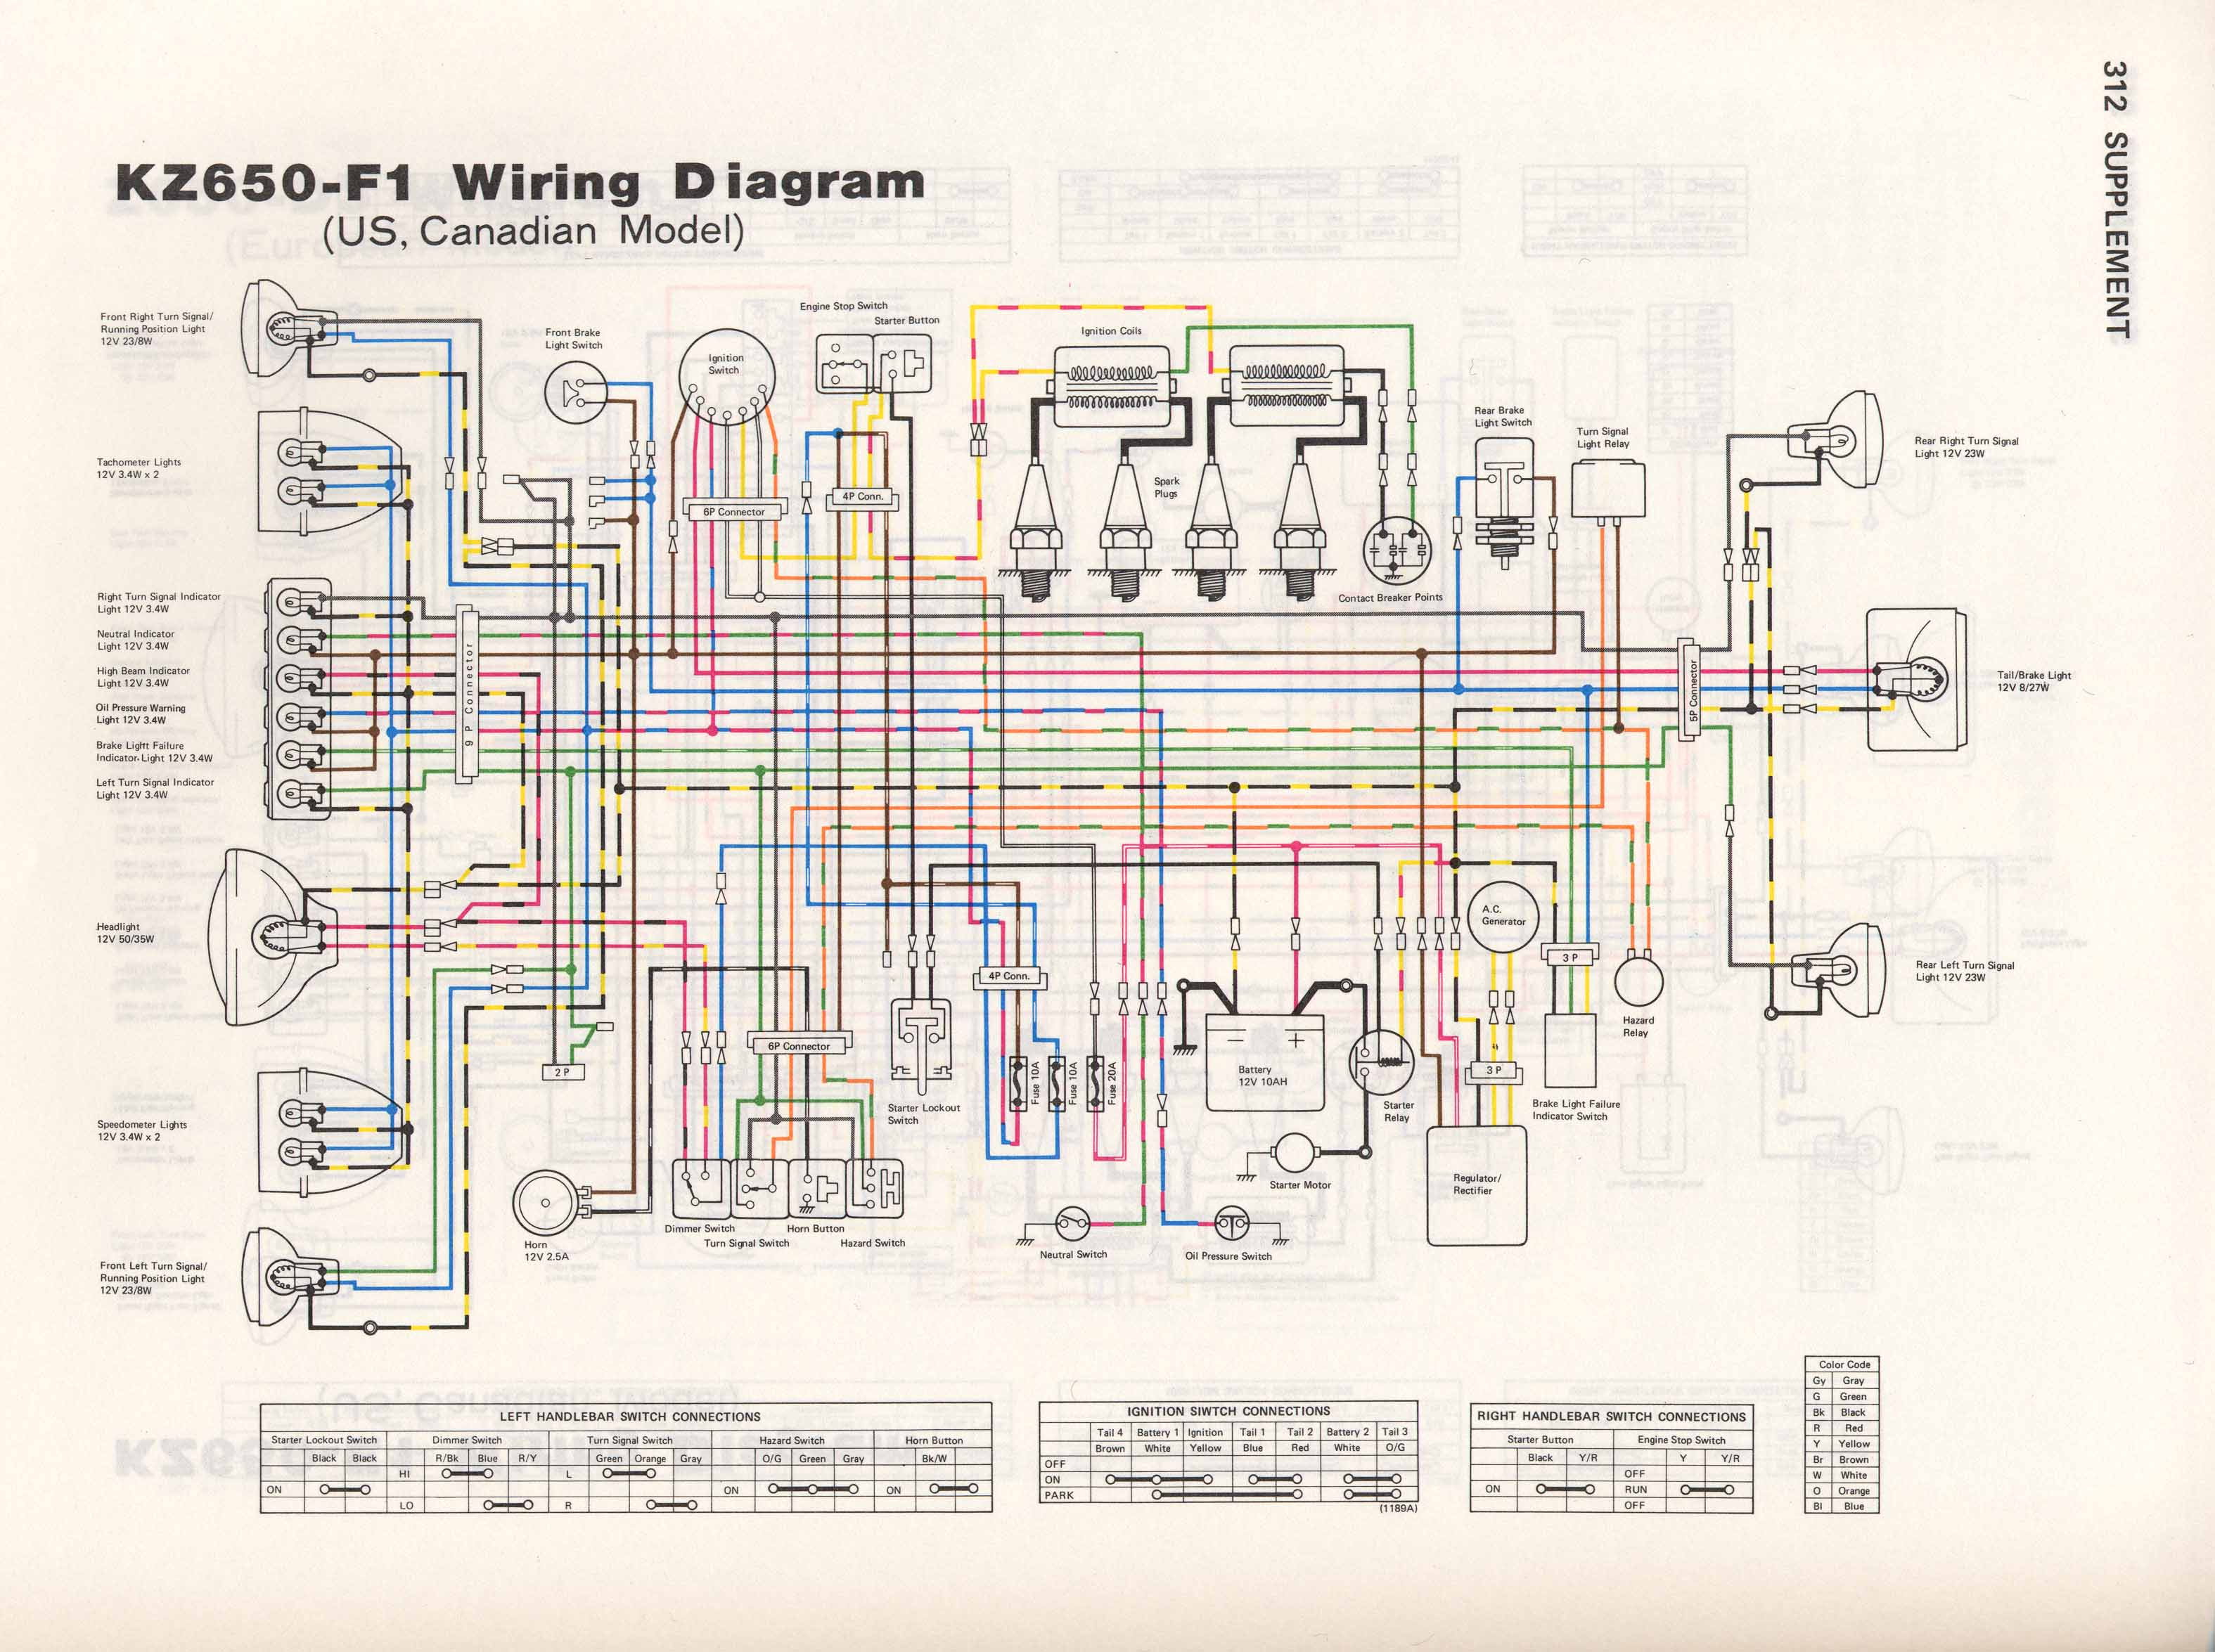 Kz650info Wiring Diagrams Vs Kz650 F1